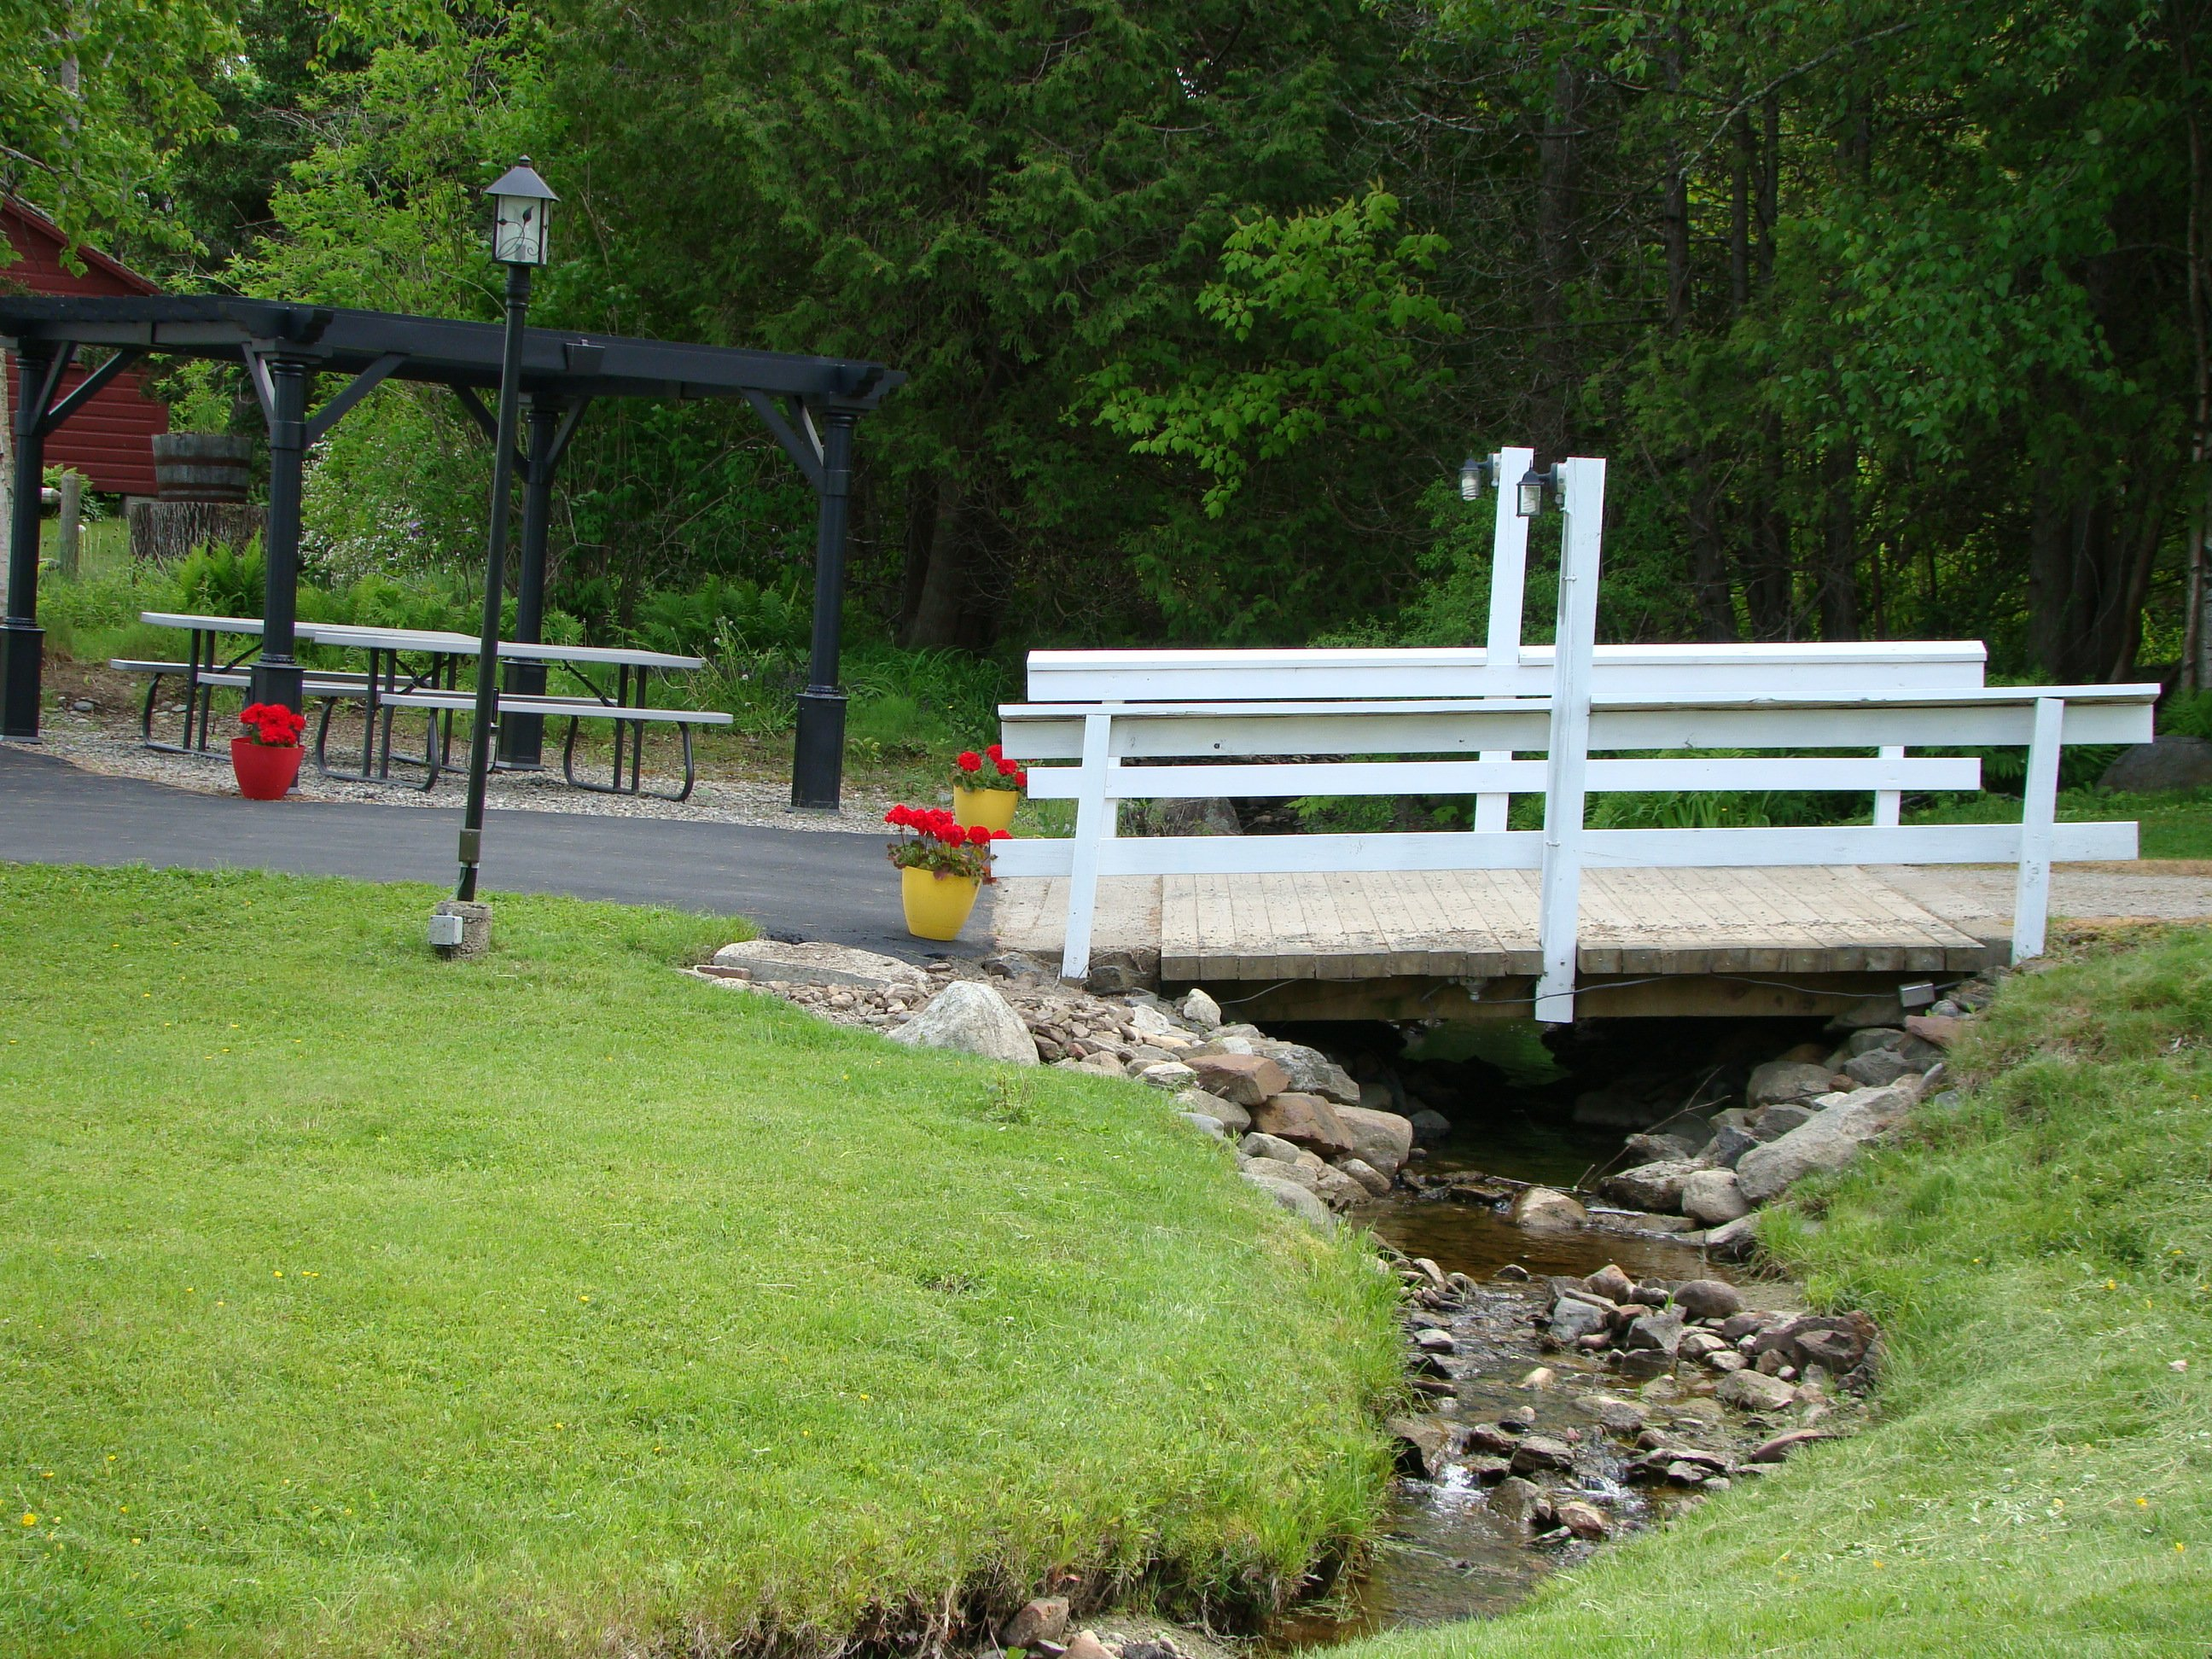 Park-like setting for cottages and motel - picnic area with BBQ